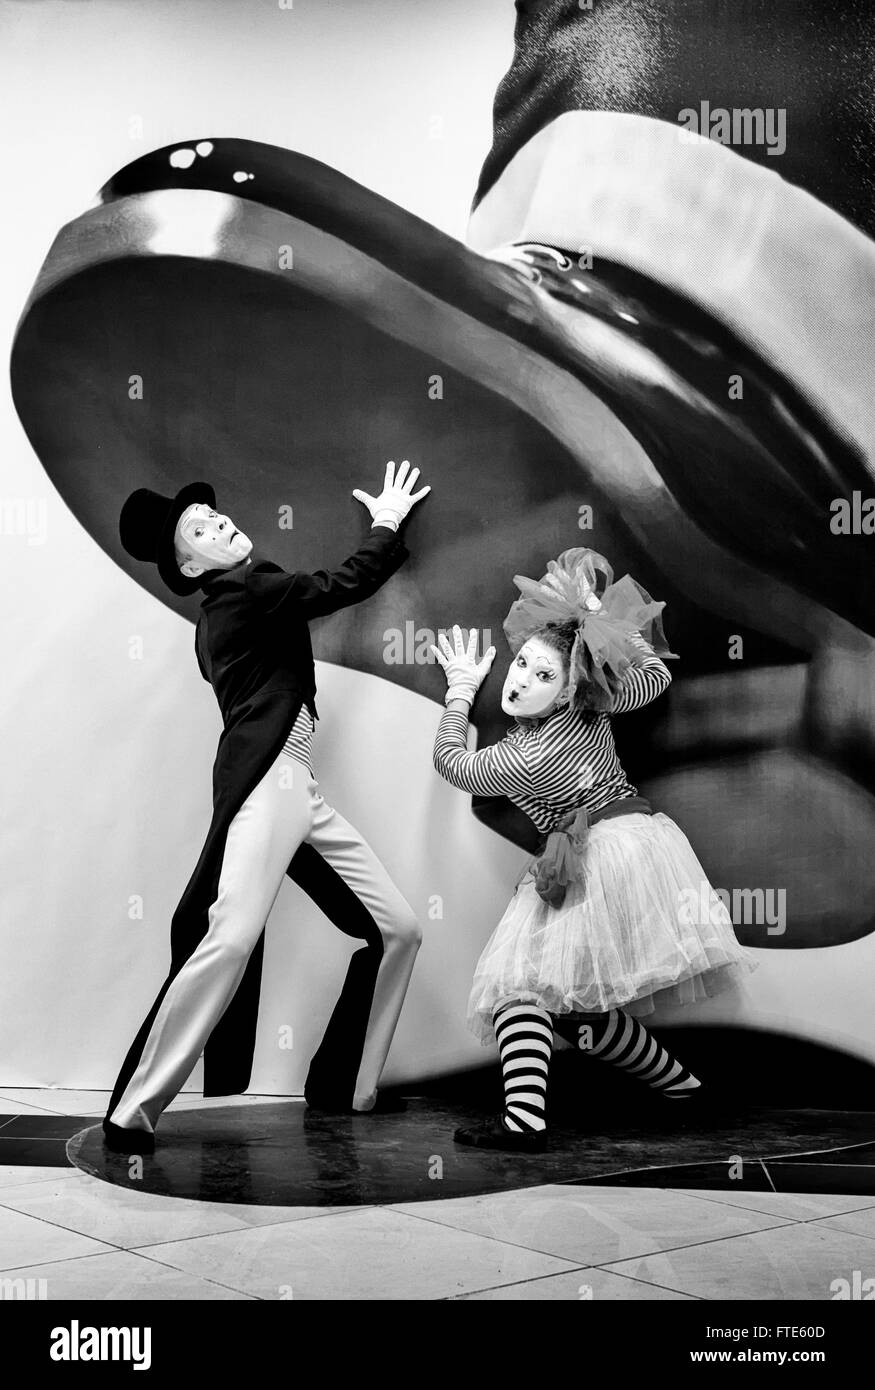 UFA - RUSSIA 21ST FEBRUARY 2016 - Male and female mime artists pose by a giant boot for people to view in a free - Stock Image